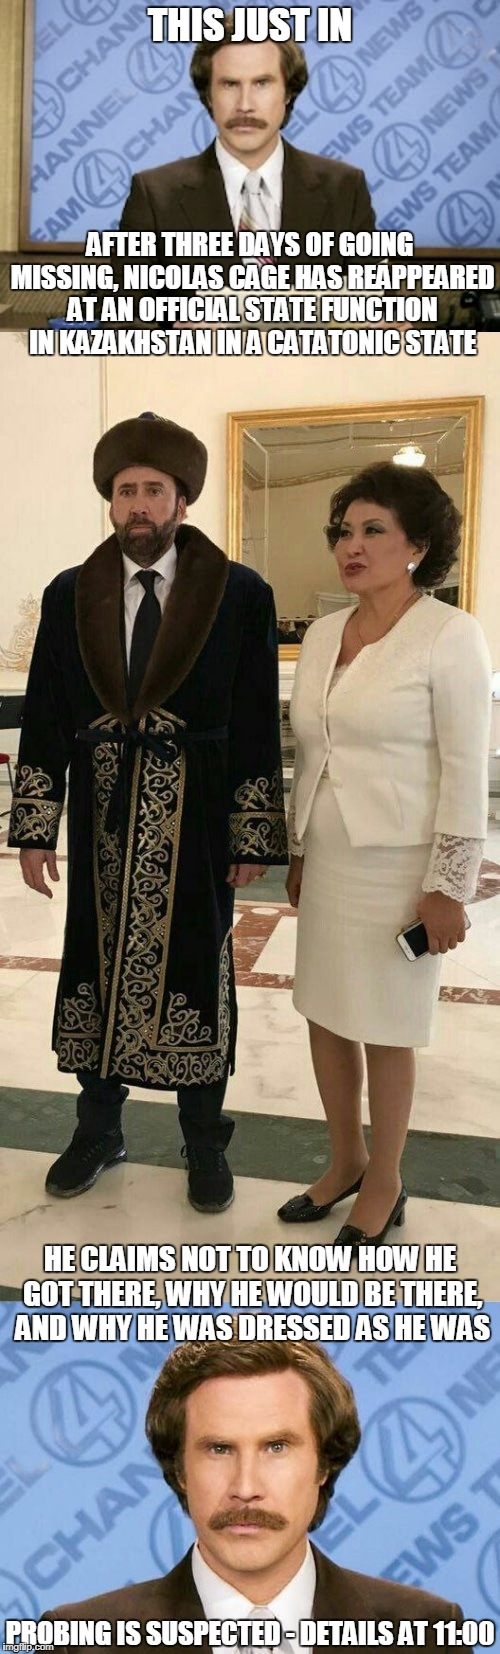 there is no indication whether this had to do with finding his lost career | THIS JUST IN PROBING IS SUSPECTED - DETAILS AT 11:00 AFTER THREE DAYS OF GOING MISSING, NICOLAS CAGE HAS REAPPEARED AT AN OFFICIAL STATE FUN | image tagged in memes,nicolas cage,ron burgundy,nicolas cage in kazakhstan | made w/ Imgflip meme maker